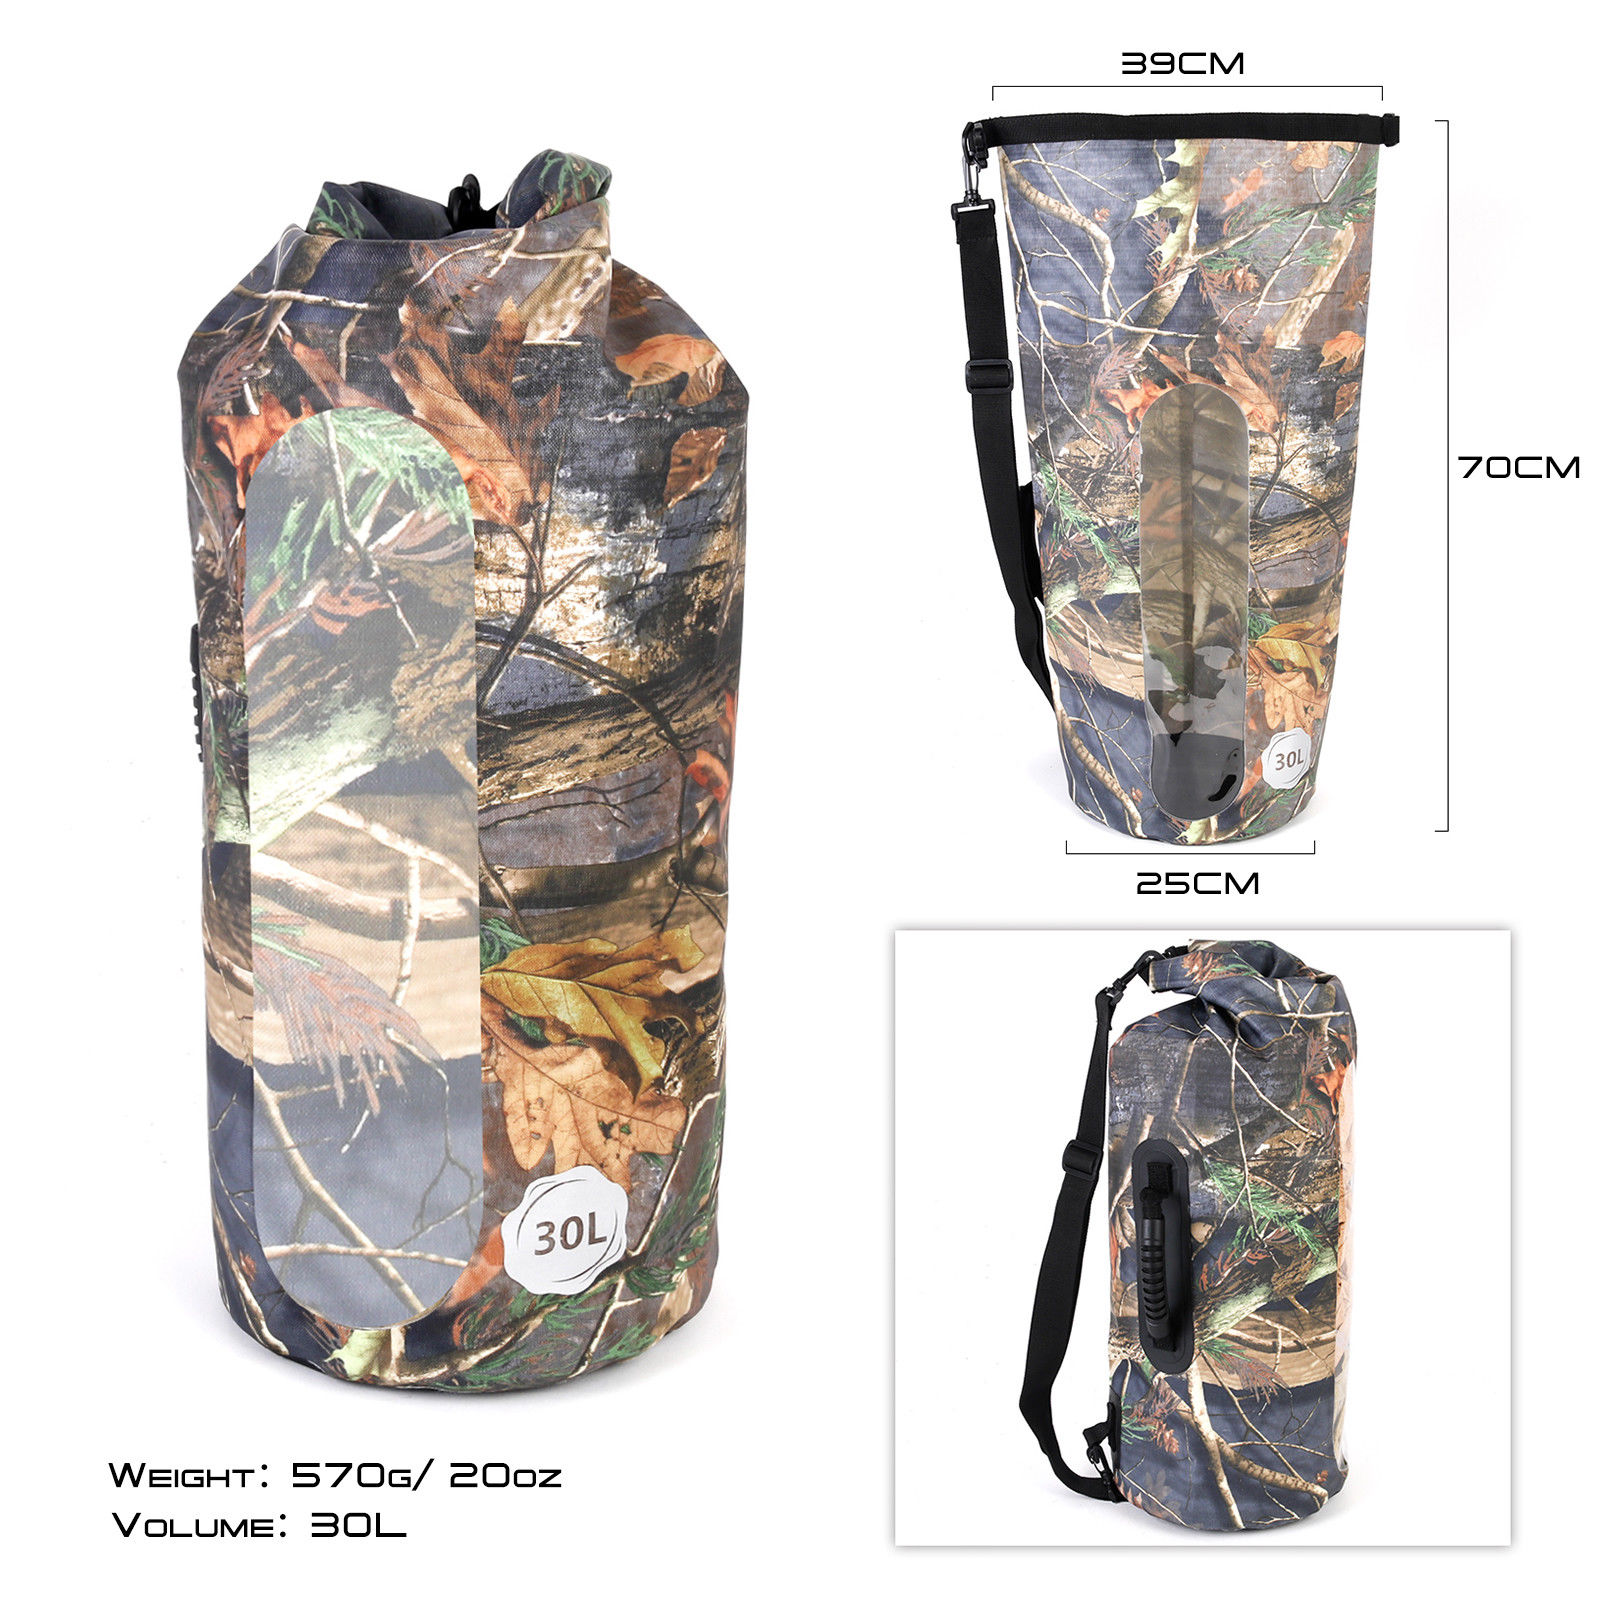 Eco-friendly strong PVC material 30L 100% Waterproof Dry Bag Camo for fishing